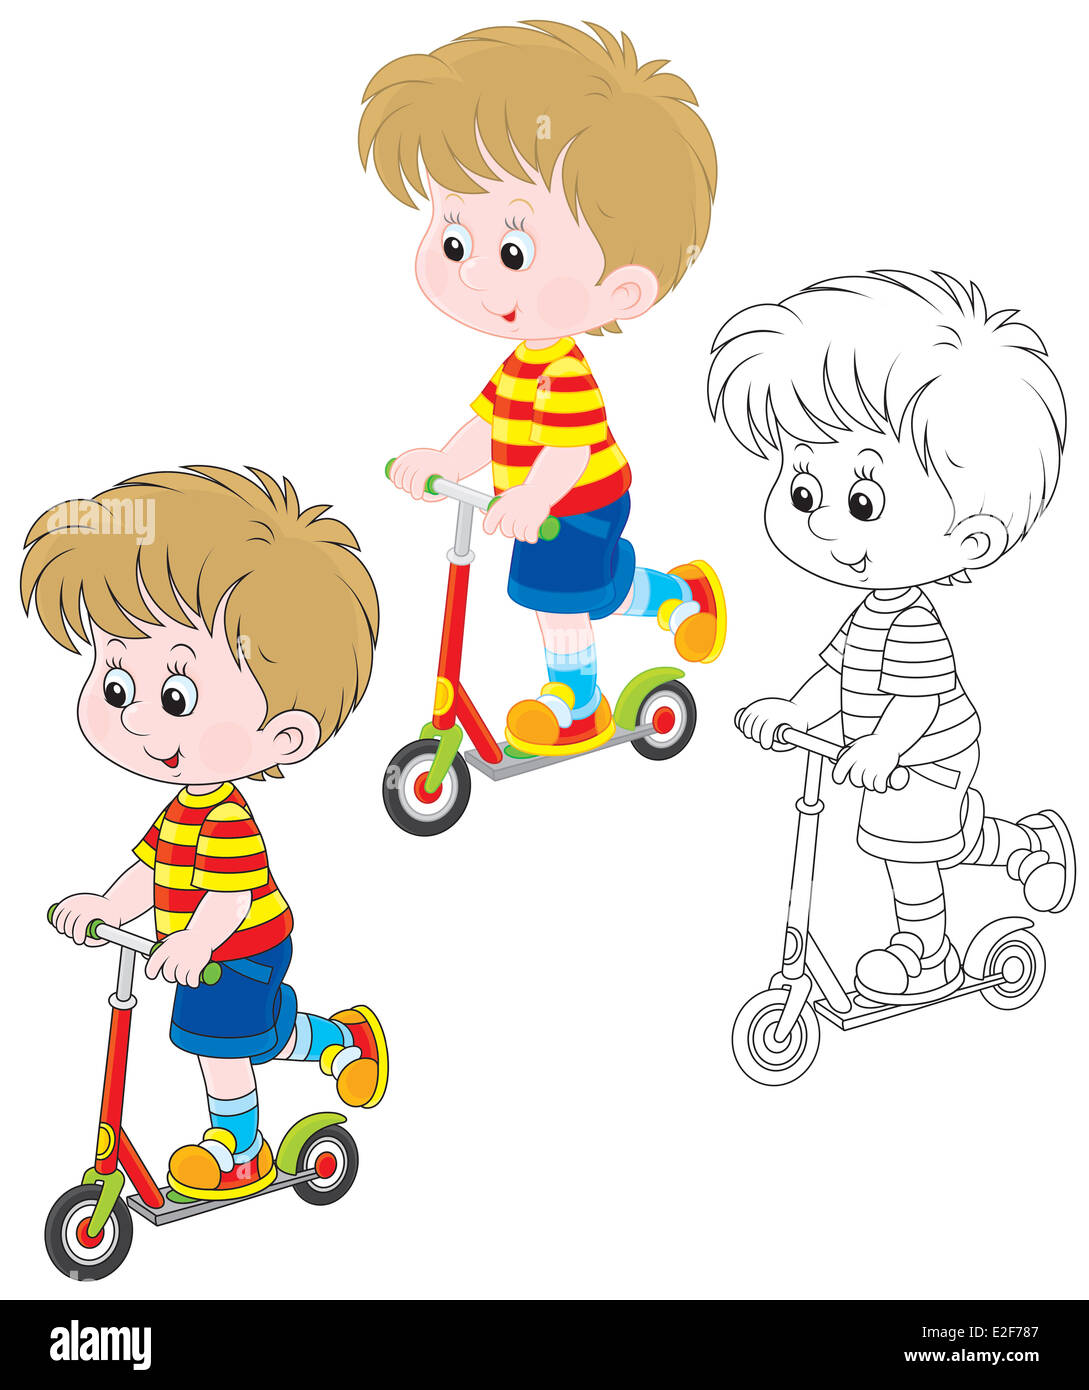 Little boy riding on a scooter - Stock Image